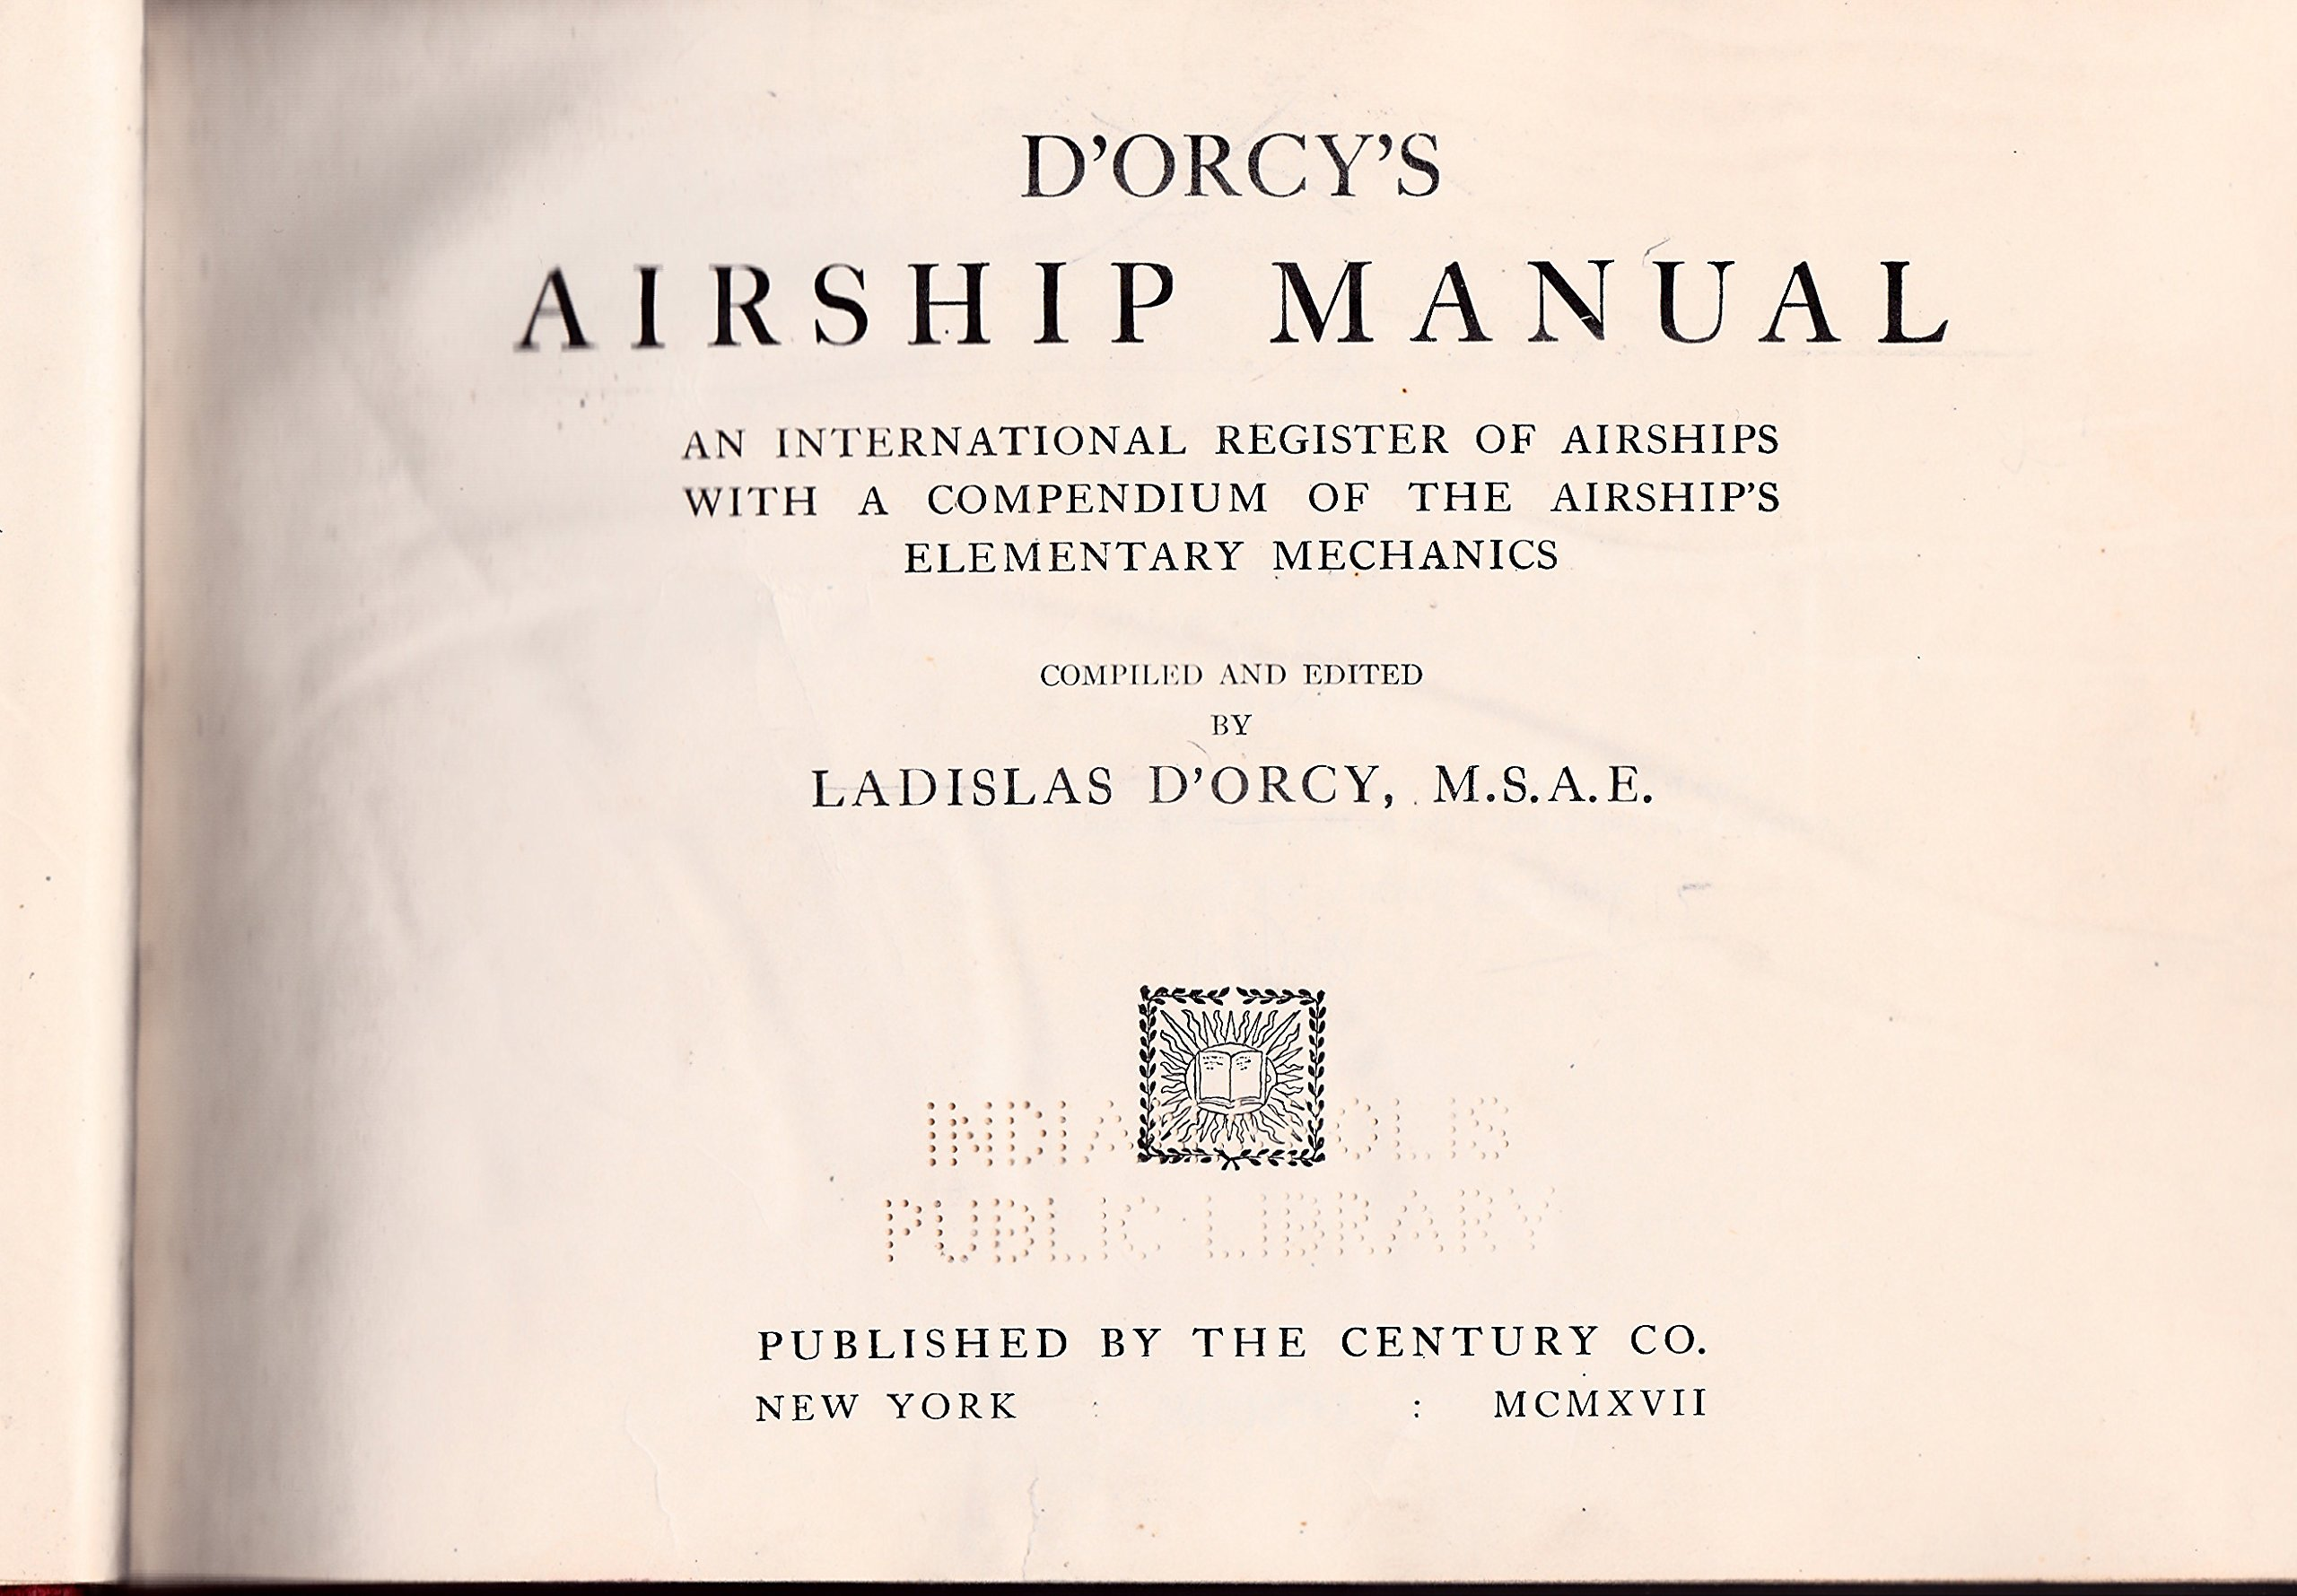 d-orcy-s-airship-manual-an-international-register-of-airships-with-a-compendium-of-the-airship-s-elementary-mechanics